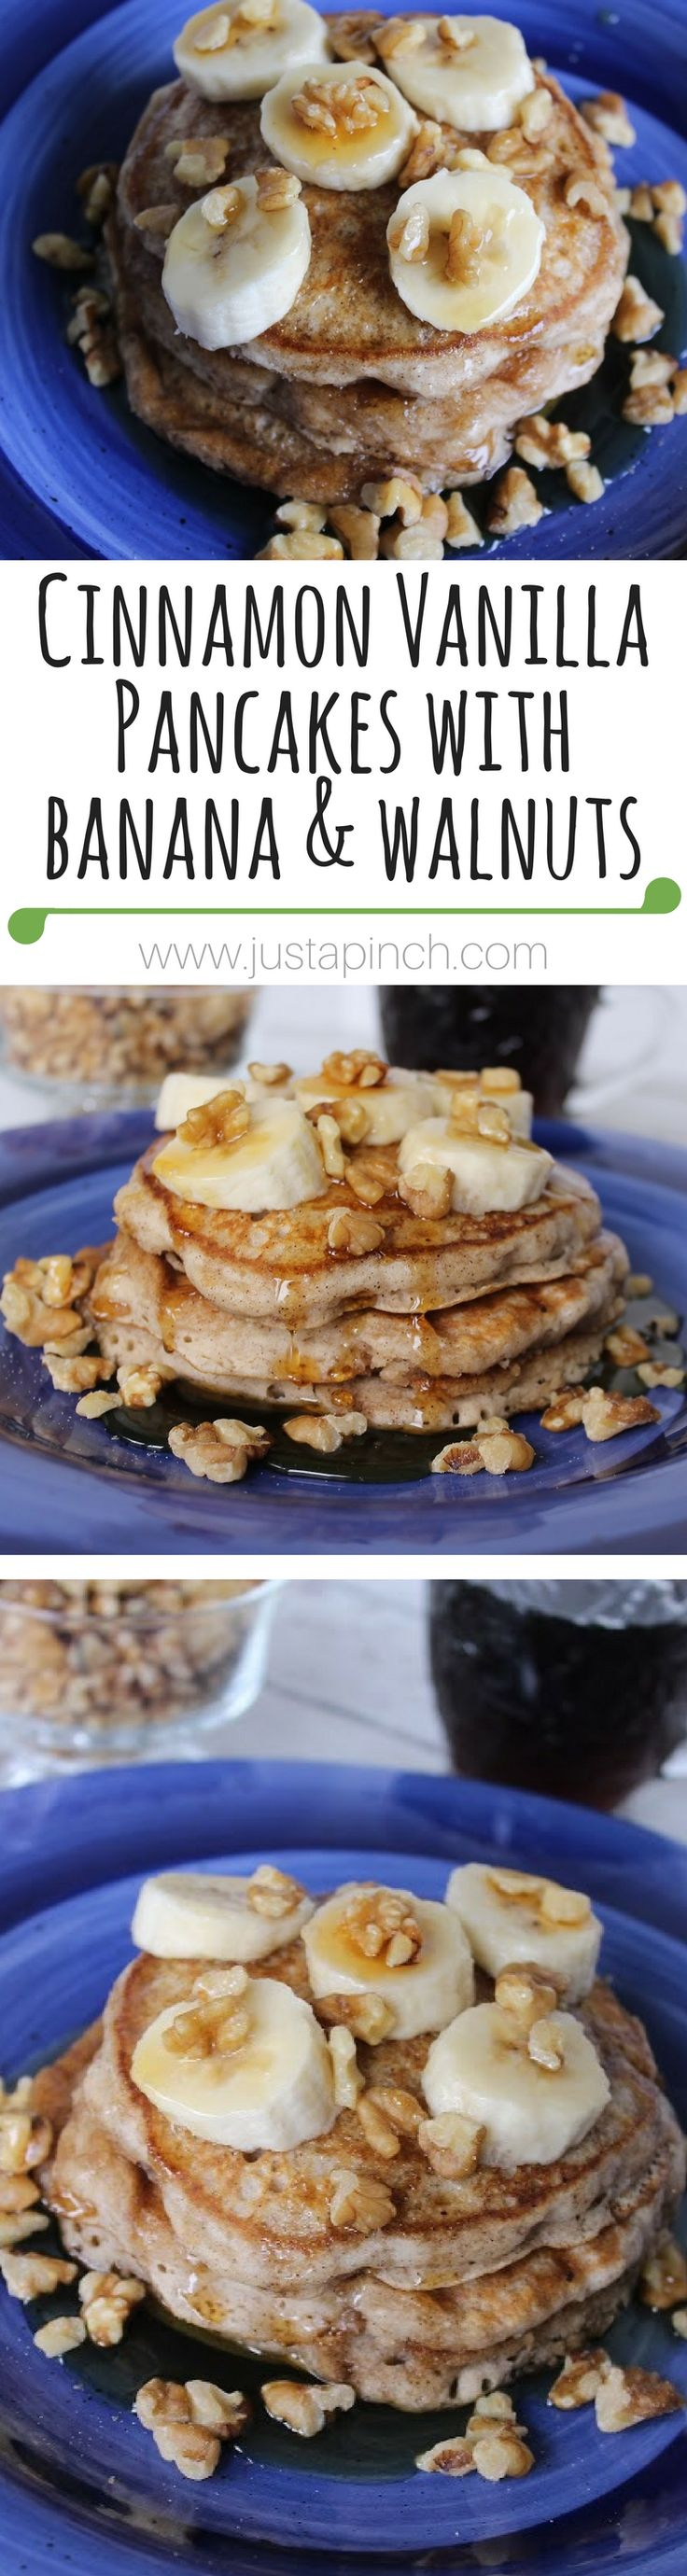 Cinnamon Vanilla Pancakes with Banana & Walnuts | These pancakes will even please picky eaters. This is an easy go-to pancake recipe that requires very little work but looks very impressive.